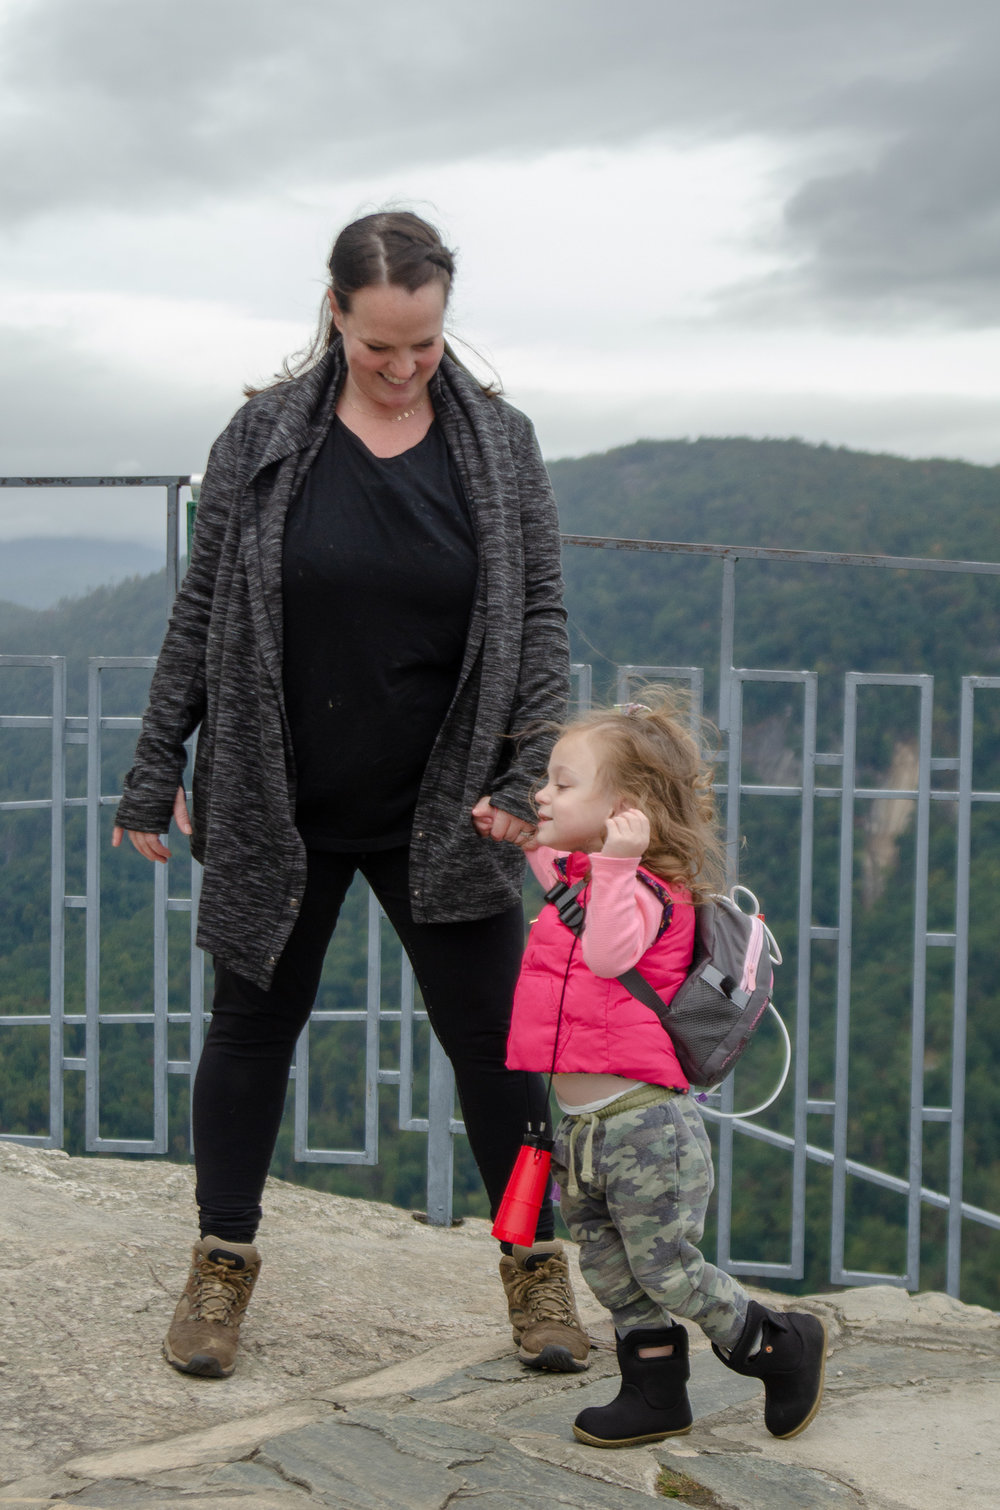 our favorite hiking gear for the entire family - she got guts